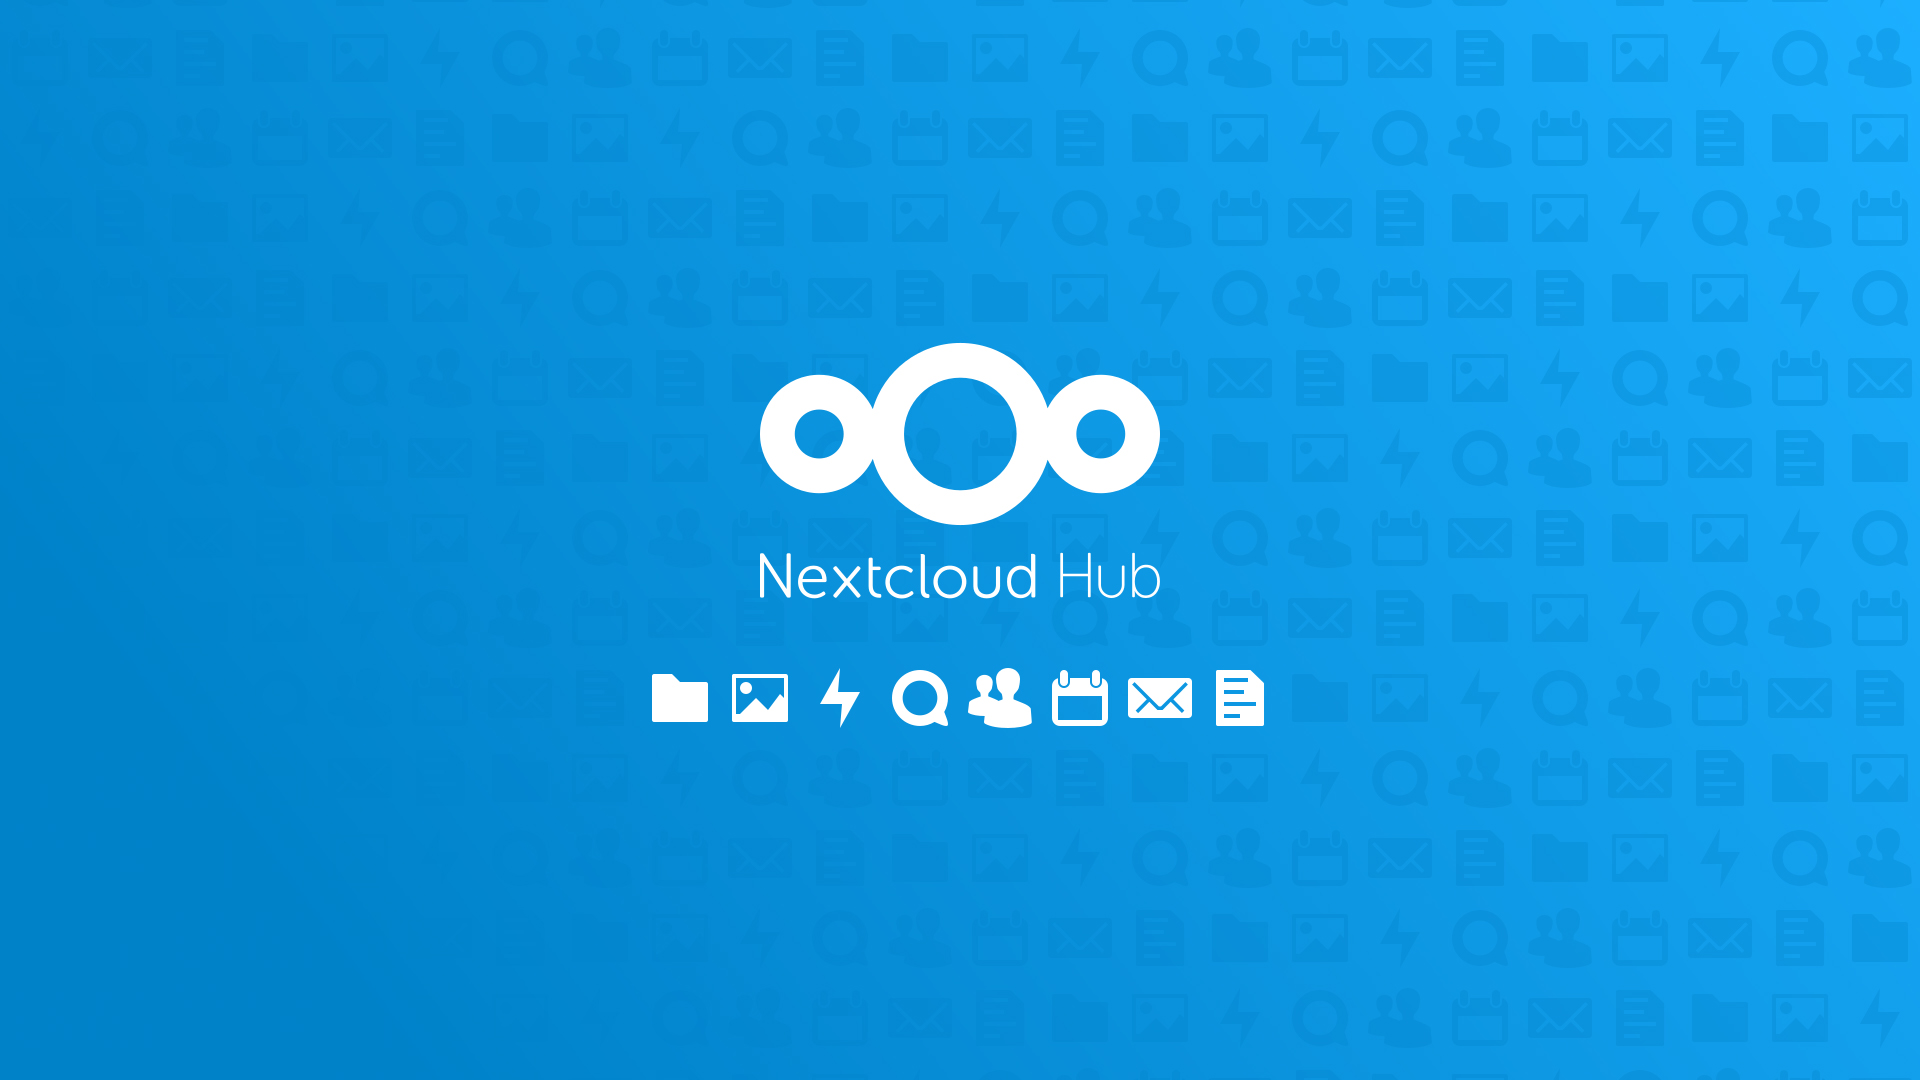 Product picture of Nextcloud Hub